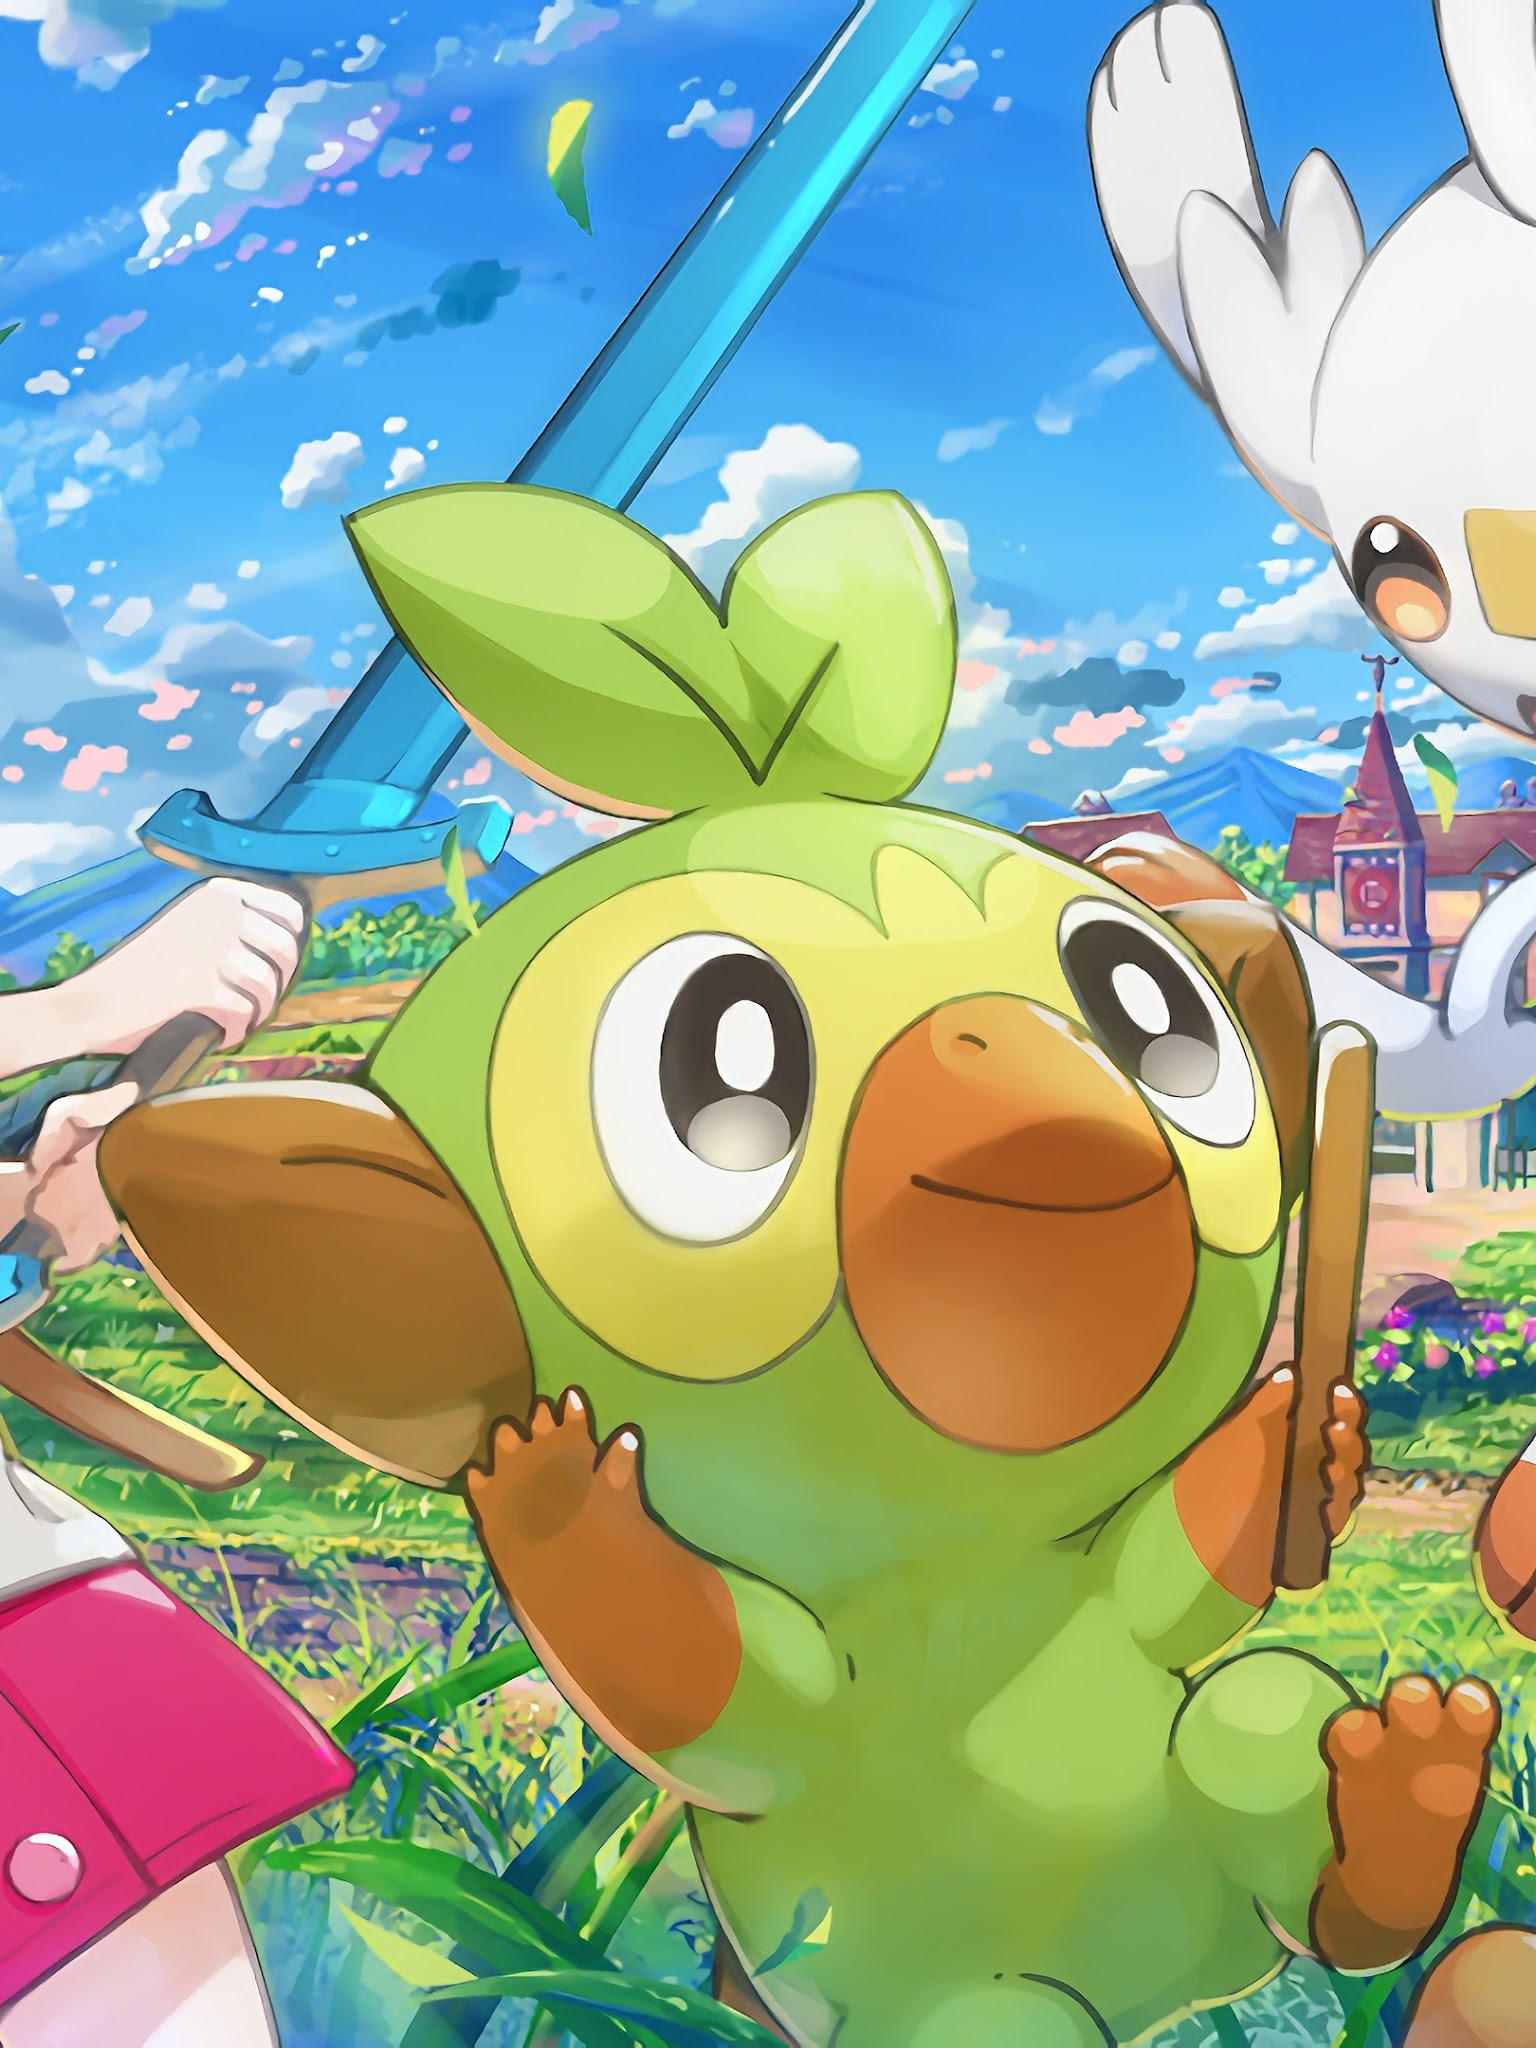 Pokemon Sword And Shield Grookey Sobble Scorbunny Female Pokemon Trainer 4k 48 Wallpaper #pokemon #pokemon sword and shield #grookey #grookey pokemon #pokemon swsh. pokemon sword and shield grookey